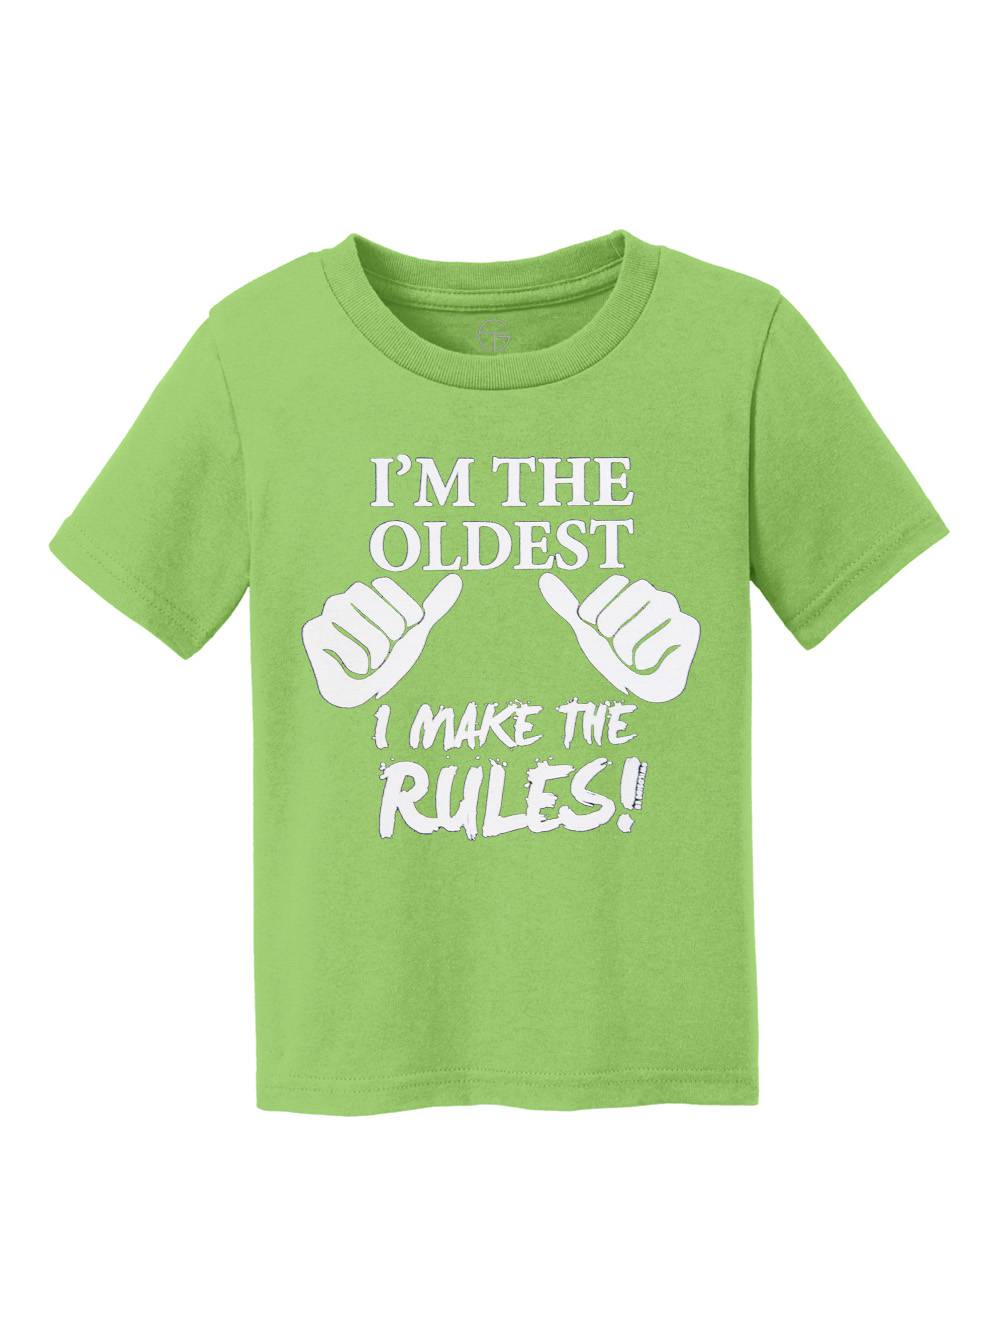 I'm the Oldest, I Make the Rules Youth Cotton T-Shirt